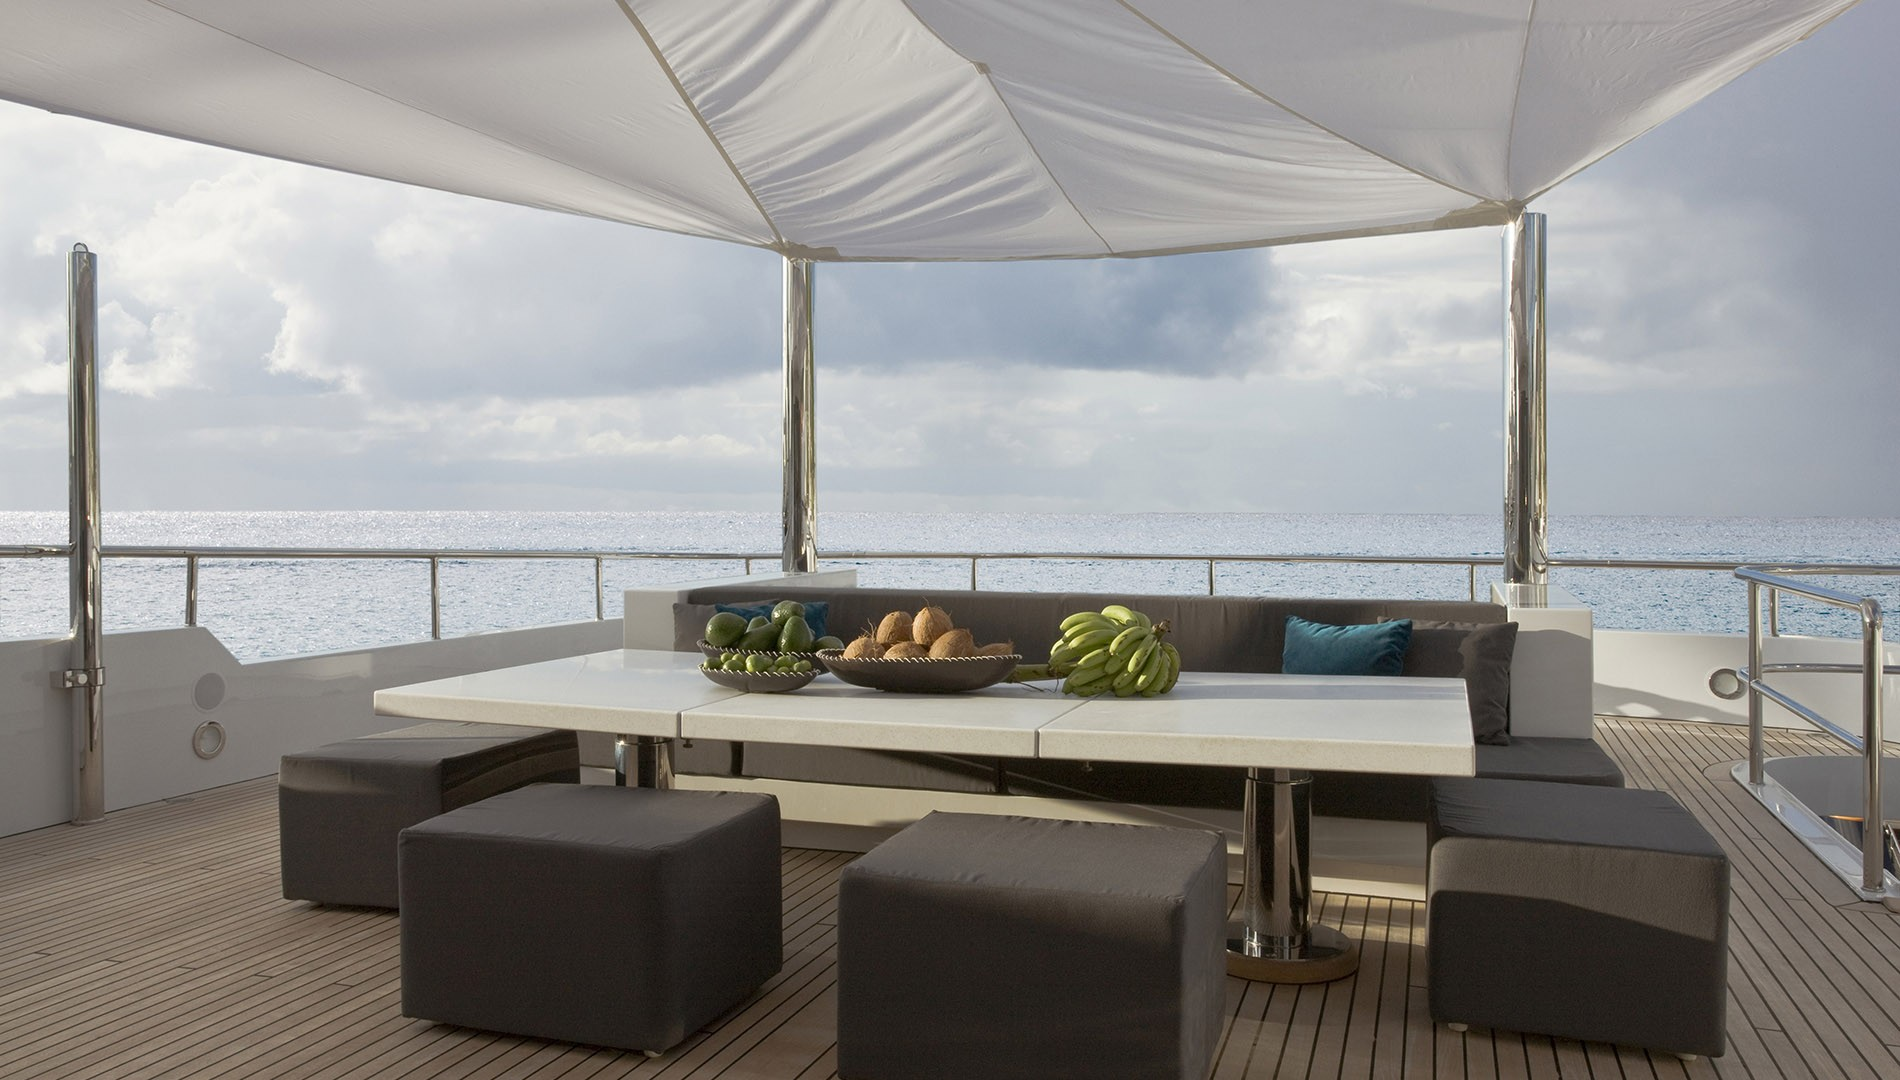 Lounging area with great views